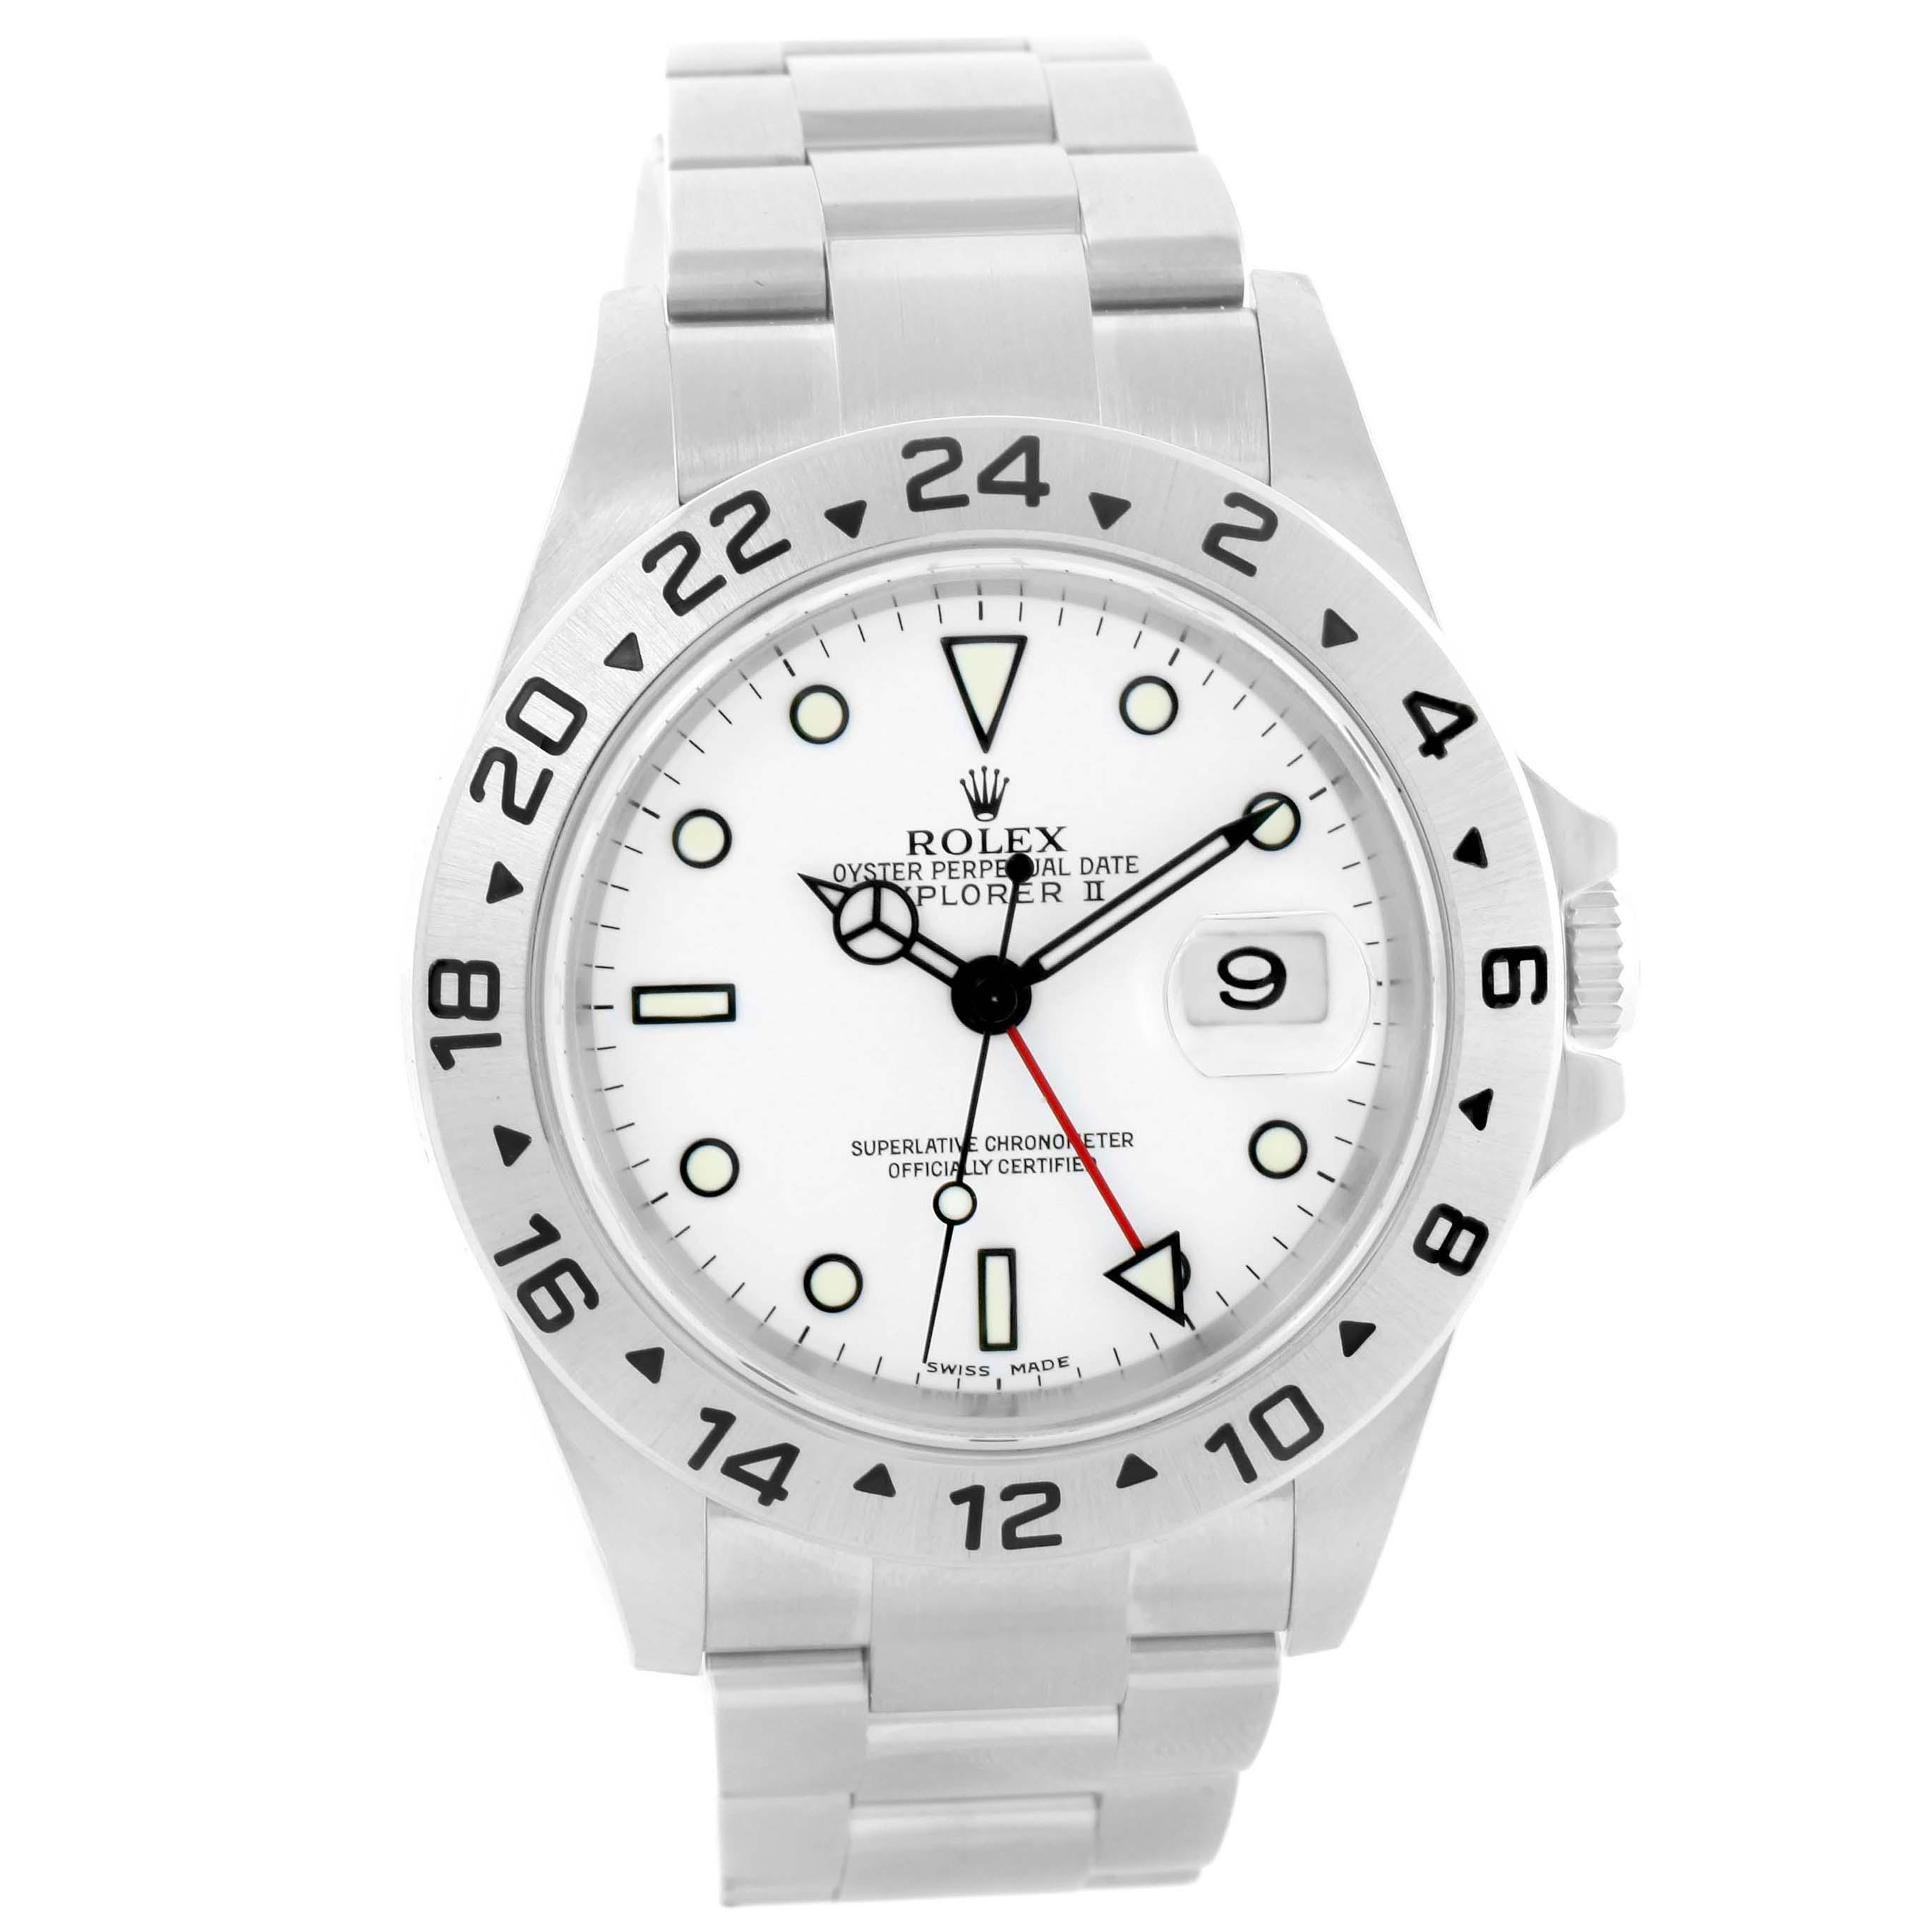 2737x2737 Rolex White Explorer Ii Dial Steel Mens 16570 Box Watch